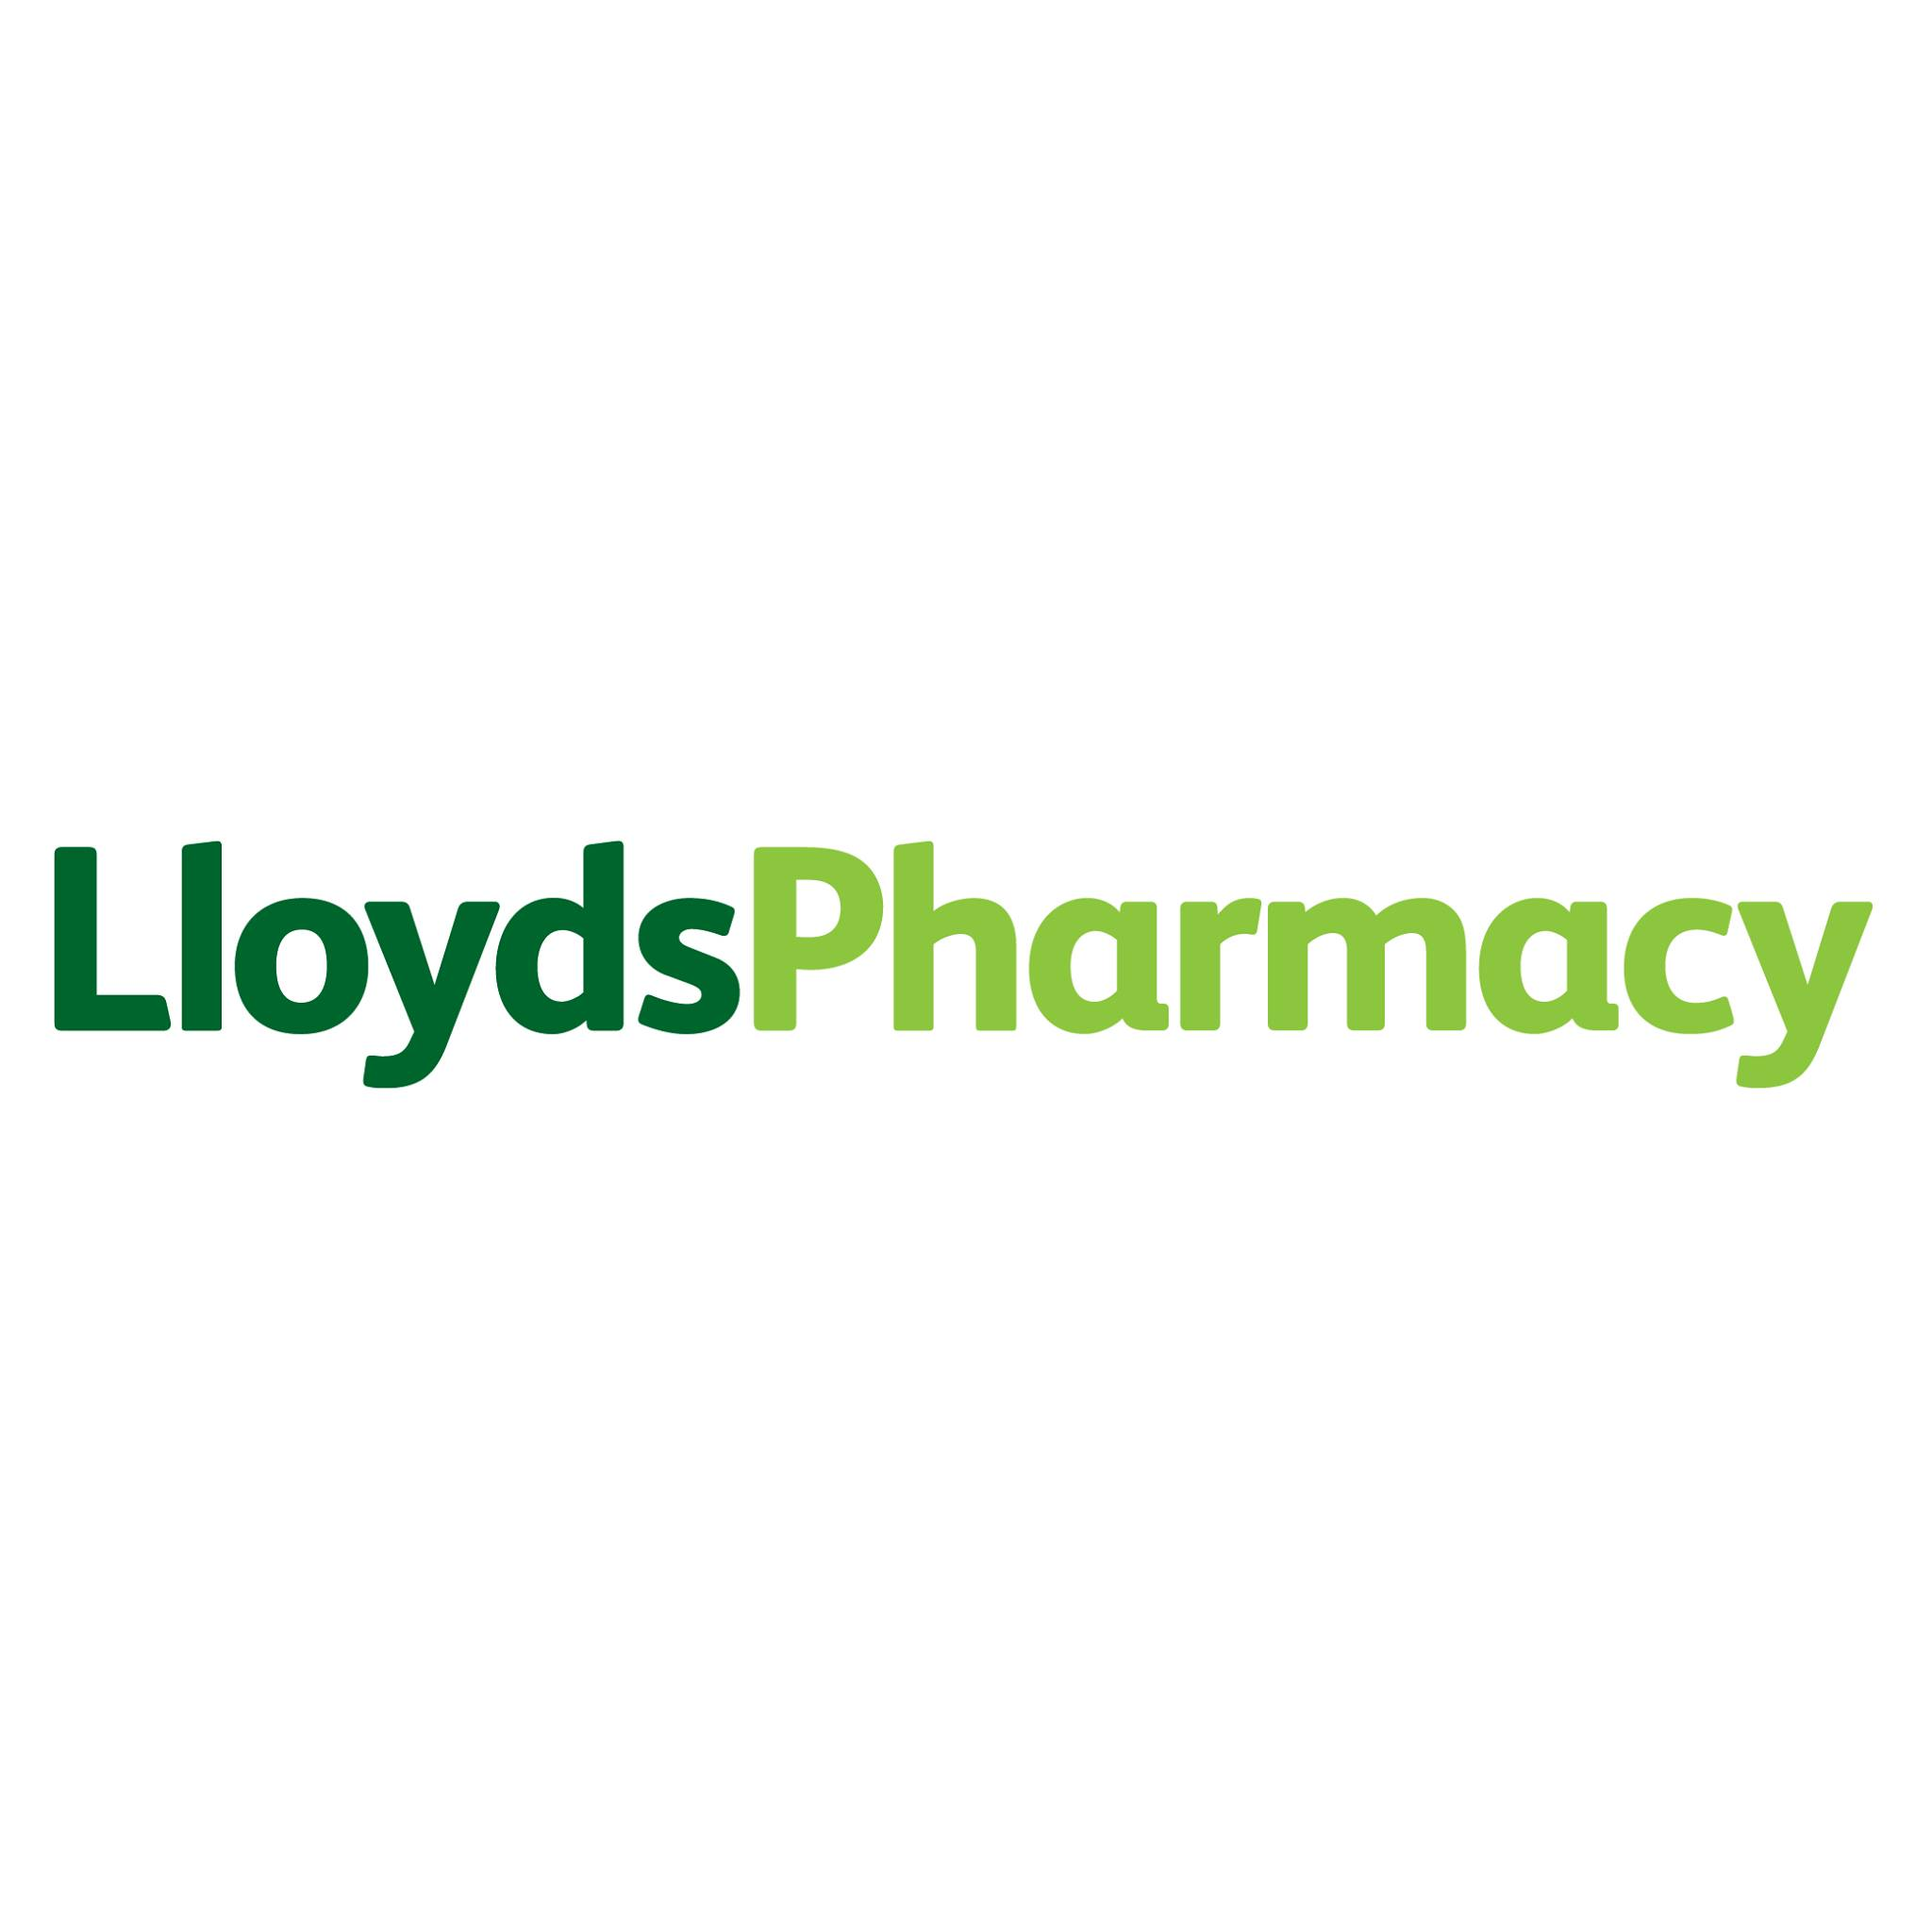 hpv vaccine lloyds cancer cap patterns to sew